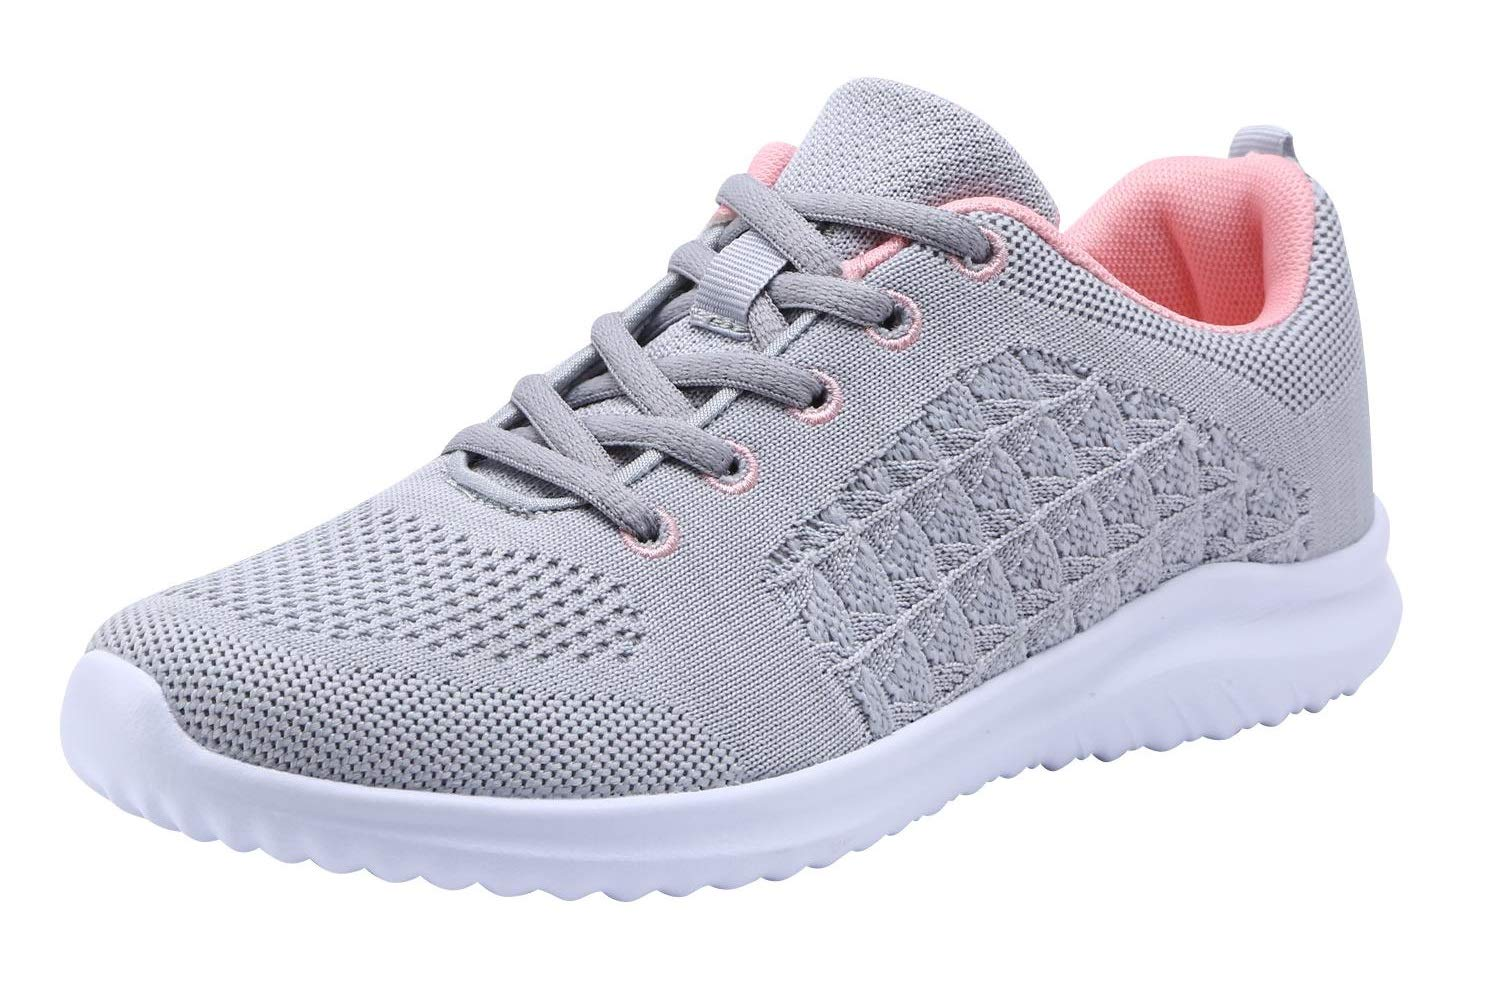 YILAN Girl's & Women's Fashion Sneakers Casual Sport Shoes (9 B(M) US, New Grey-5)